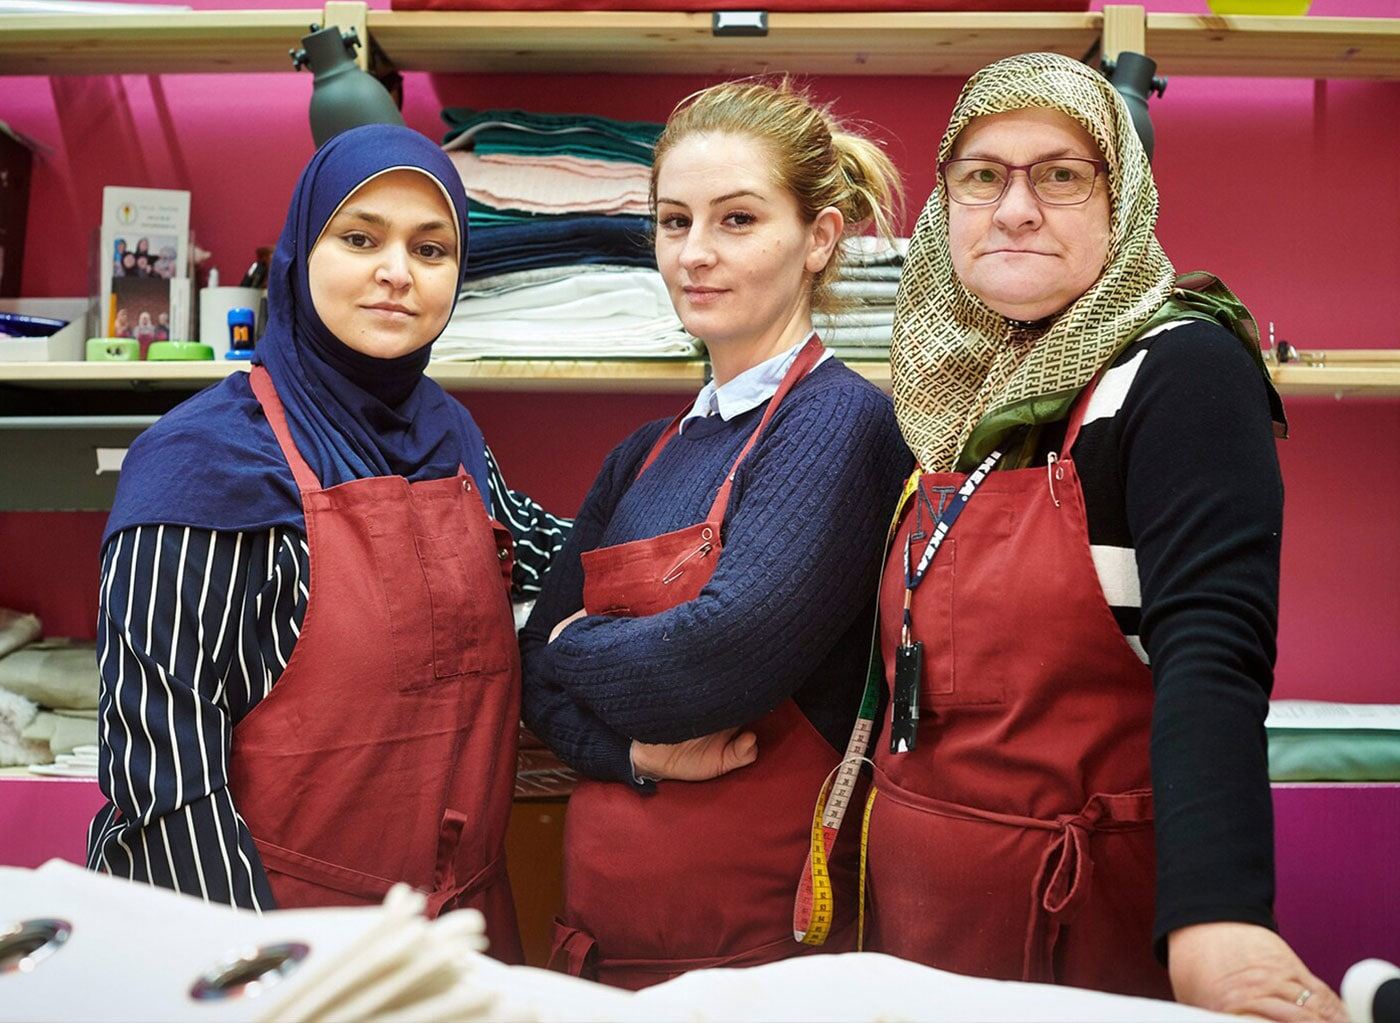 Three confident women posing at the fabrics department of an IKEA store in honor of World Refugee Day on June 20th.